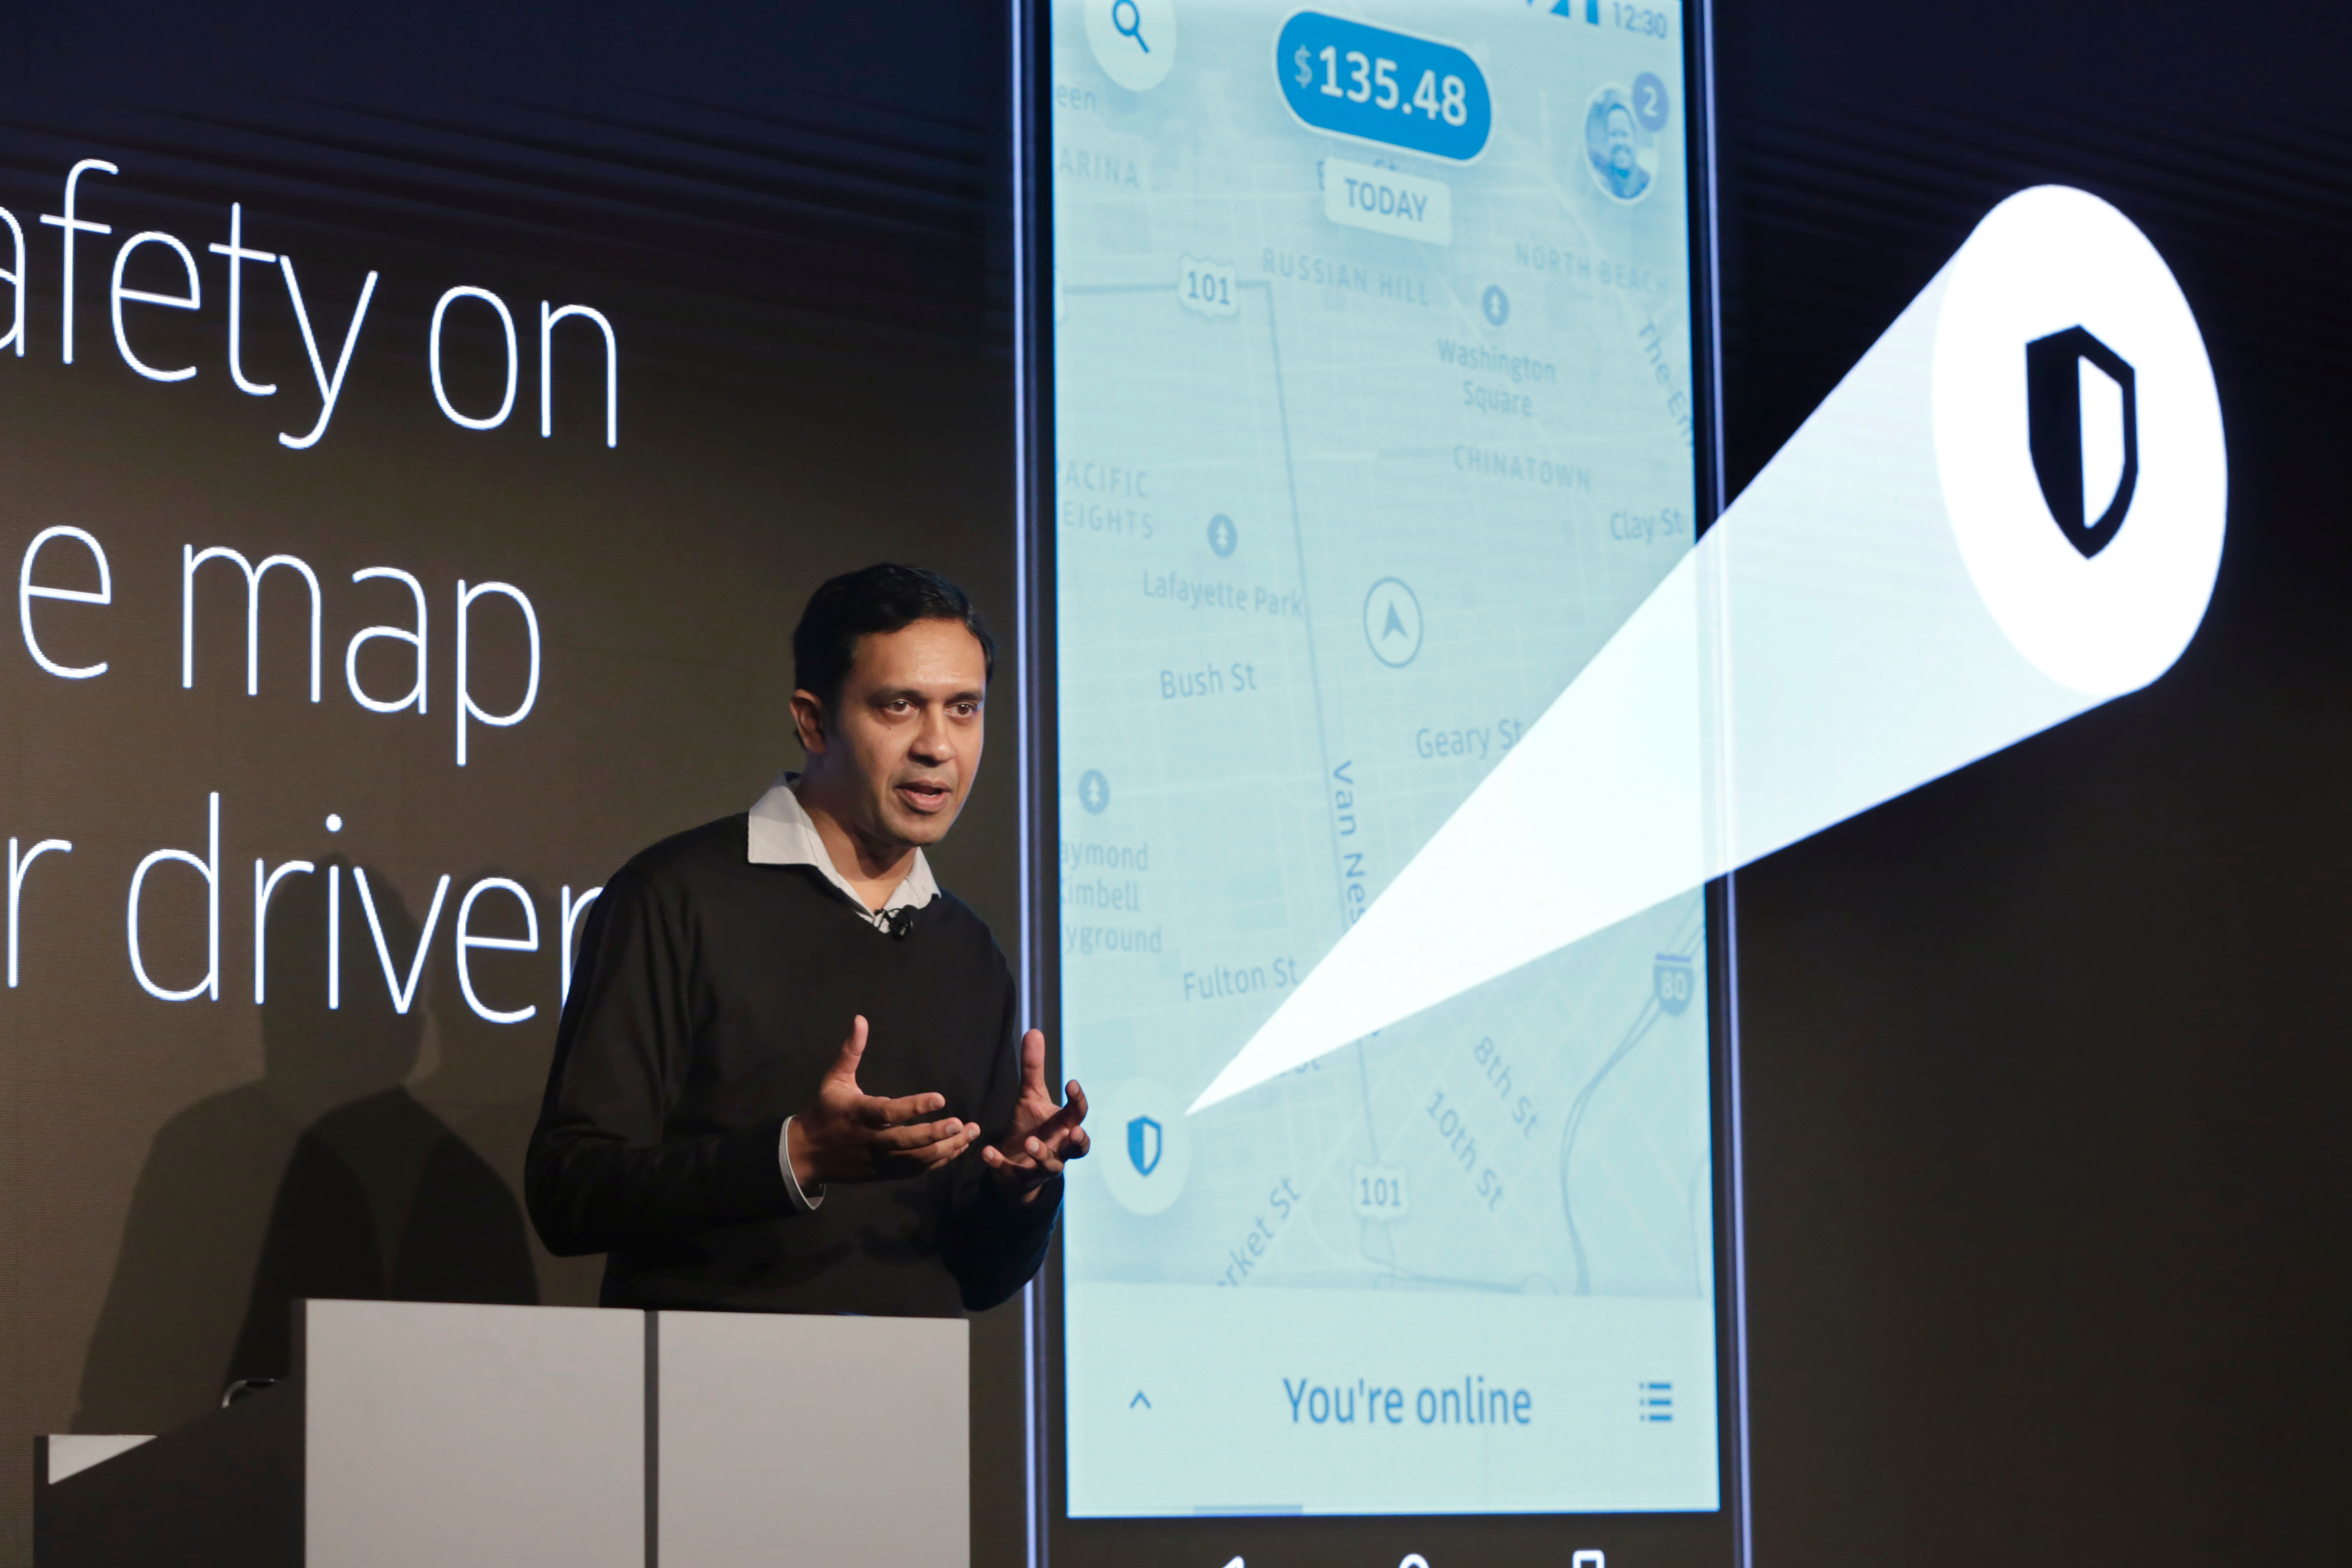 Uber Director of Product Management Sachin Kansal speaks during the company's unveiling of new features in New York, on Sept. 5, 2018.